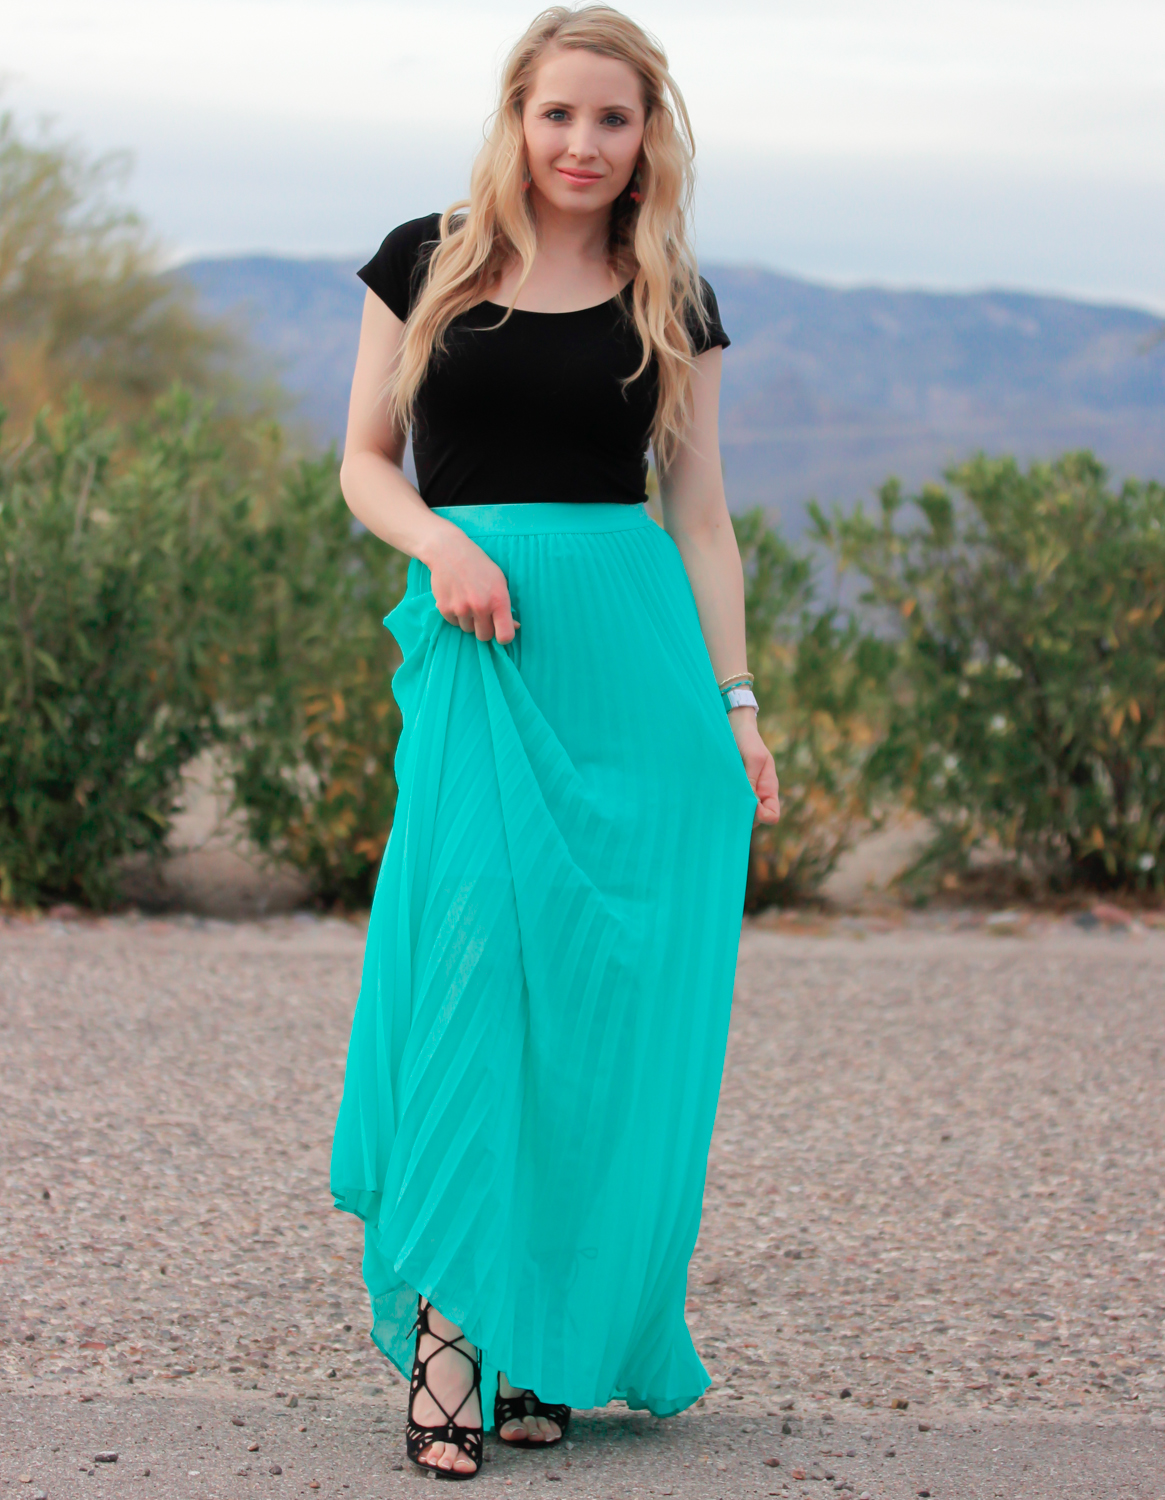 http://www.uplooder.net/img/image/77/e38dacc00b3d10029533ba4412d6afdb/mint-pleated-maxi-skirt-www.200model.blogfa.com.jpg